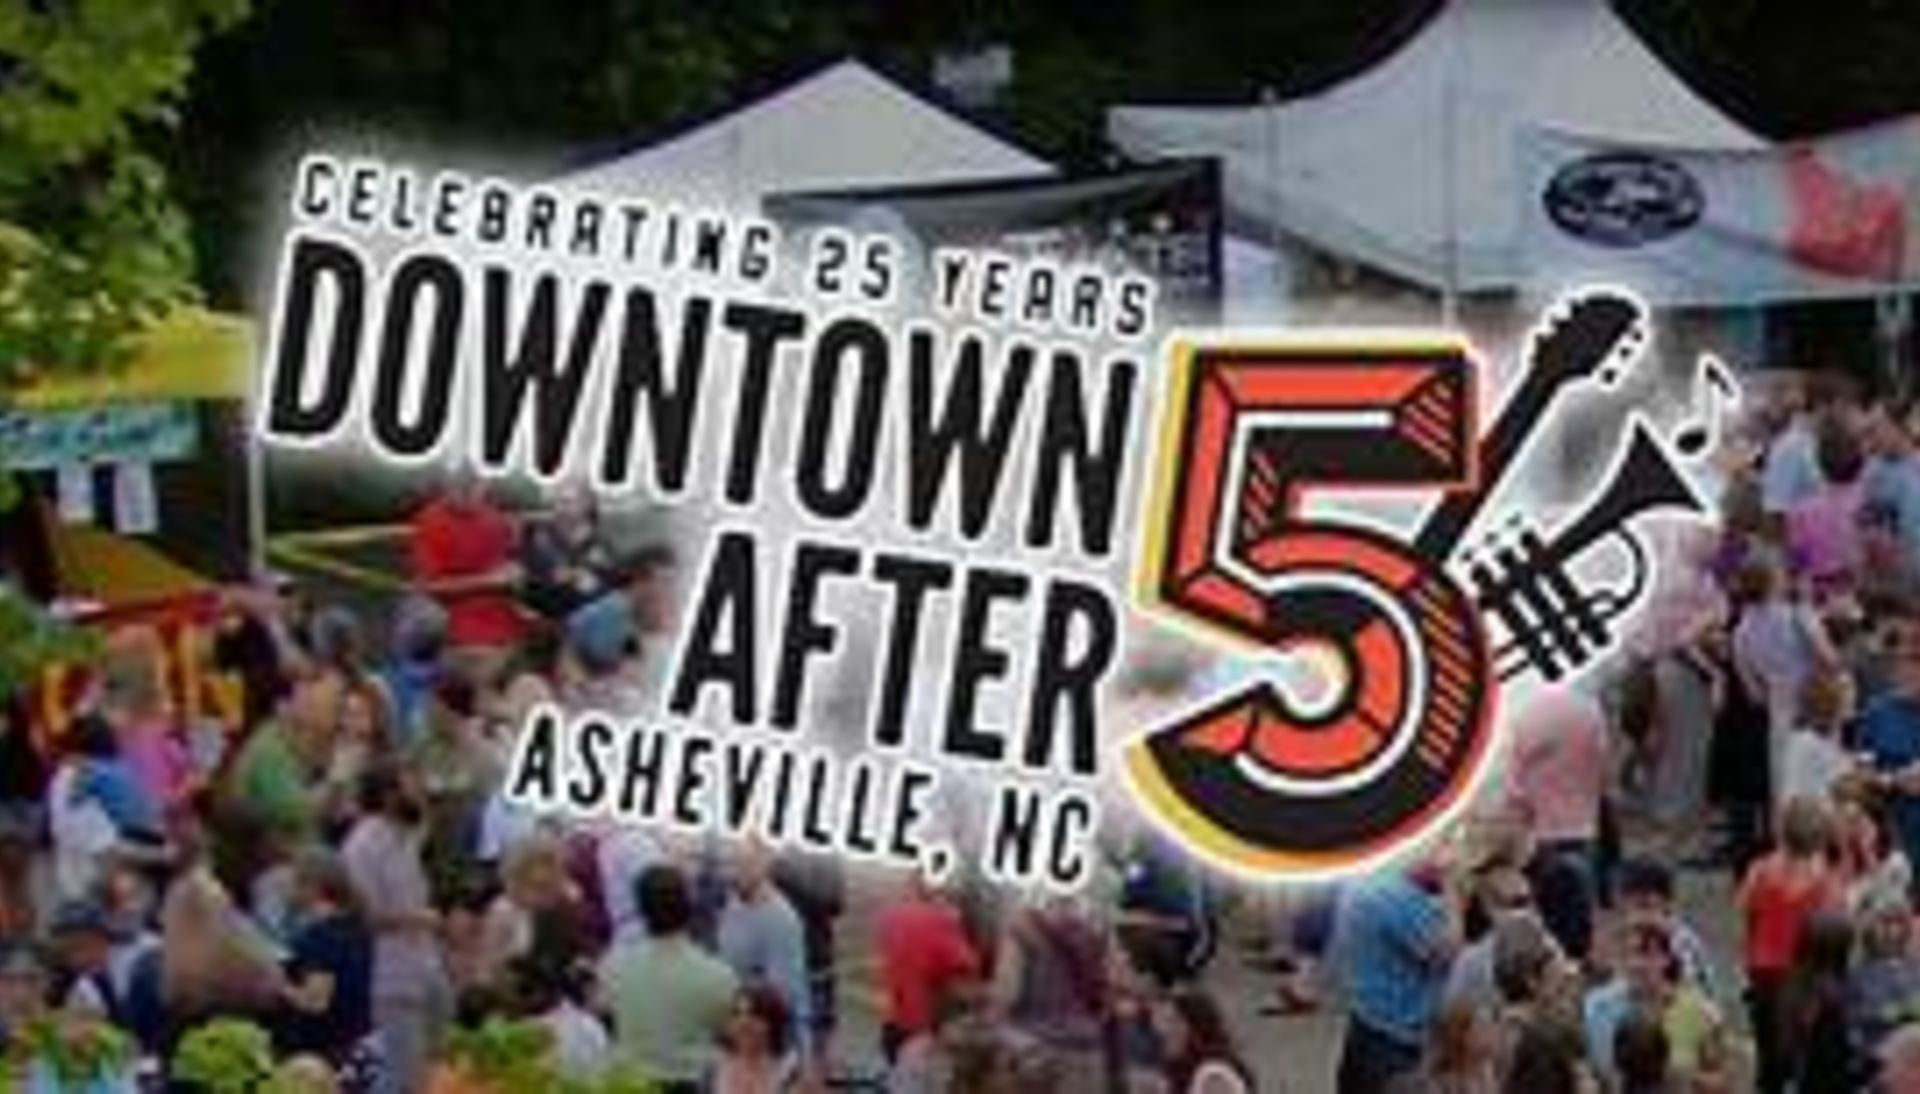 Asheville Weekend events May 17-19, 2019